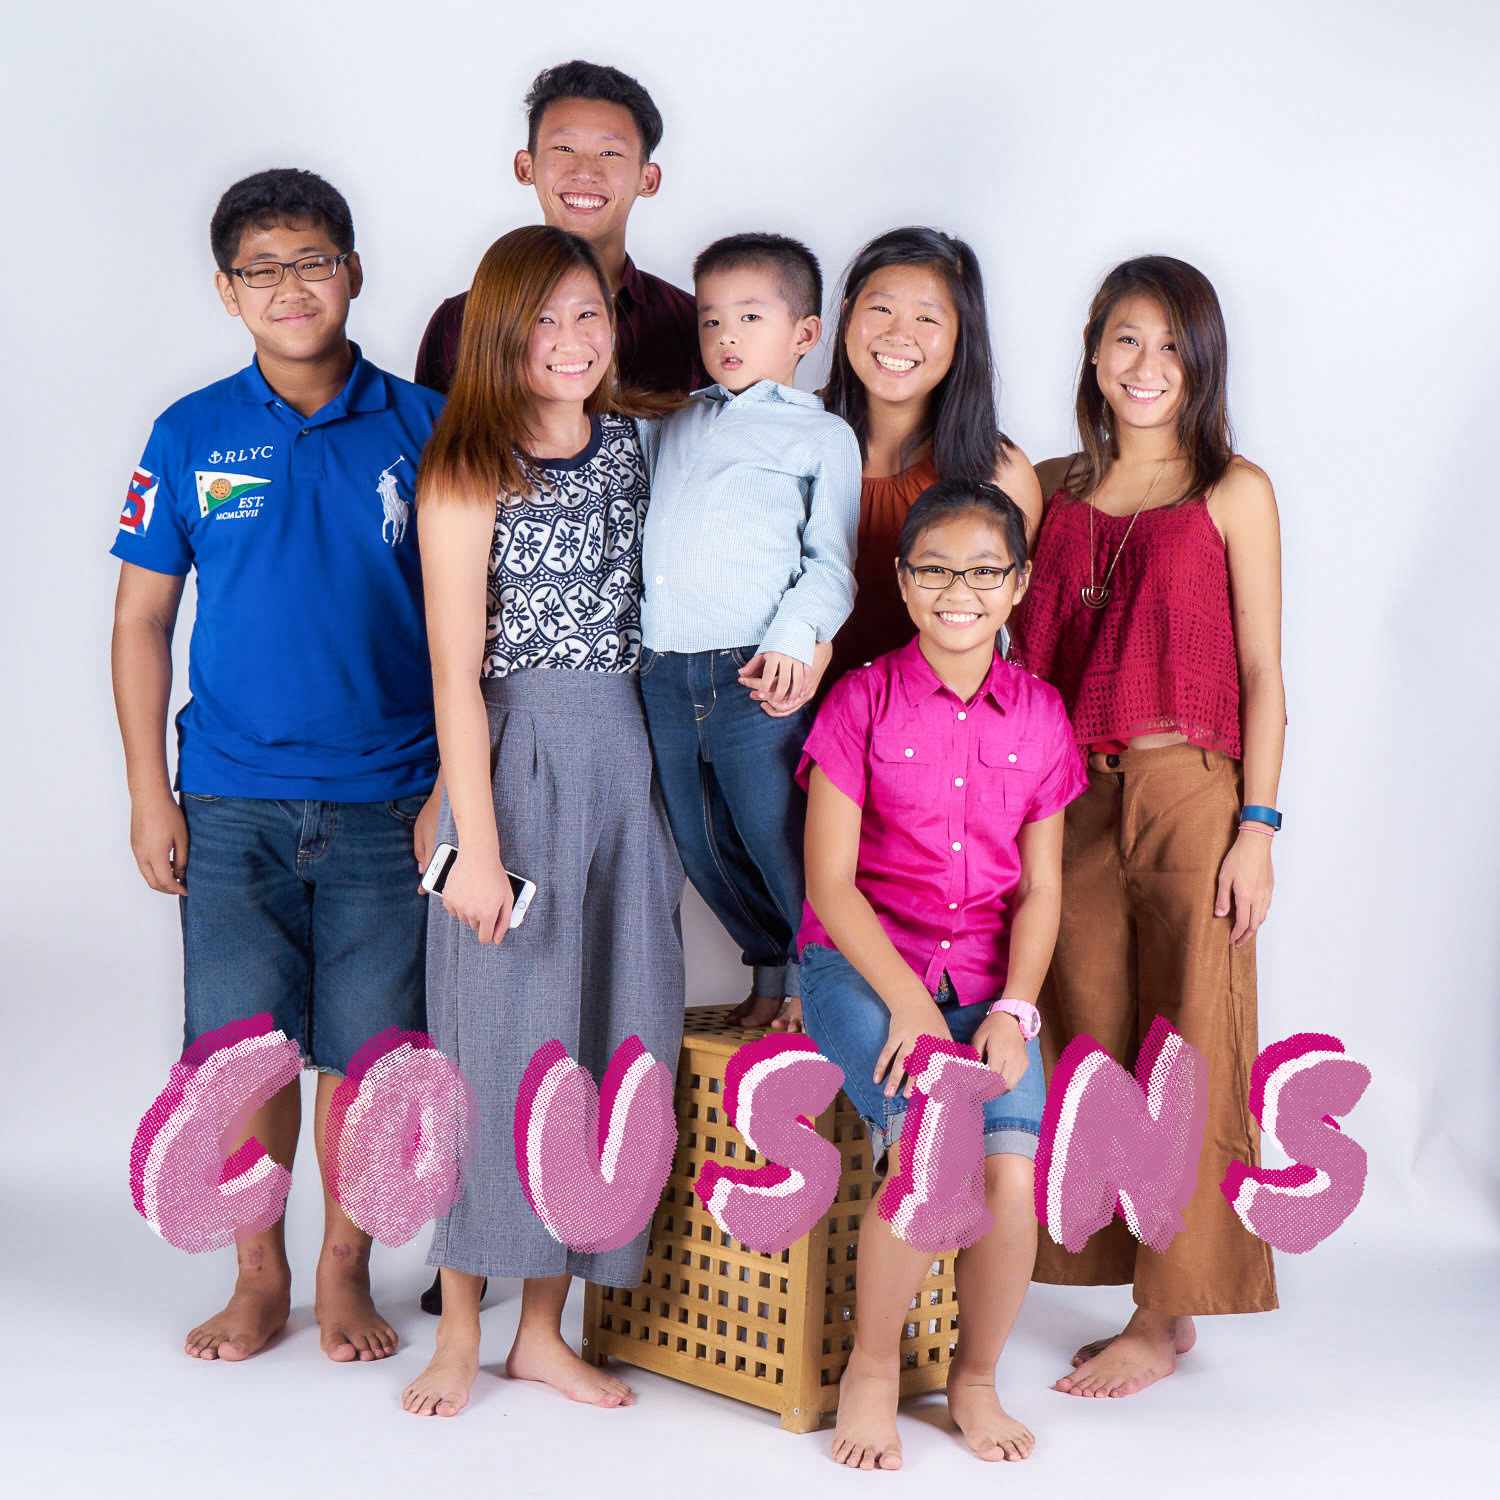 COUSINS STUDIO SHOOT!